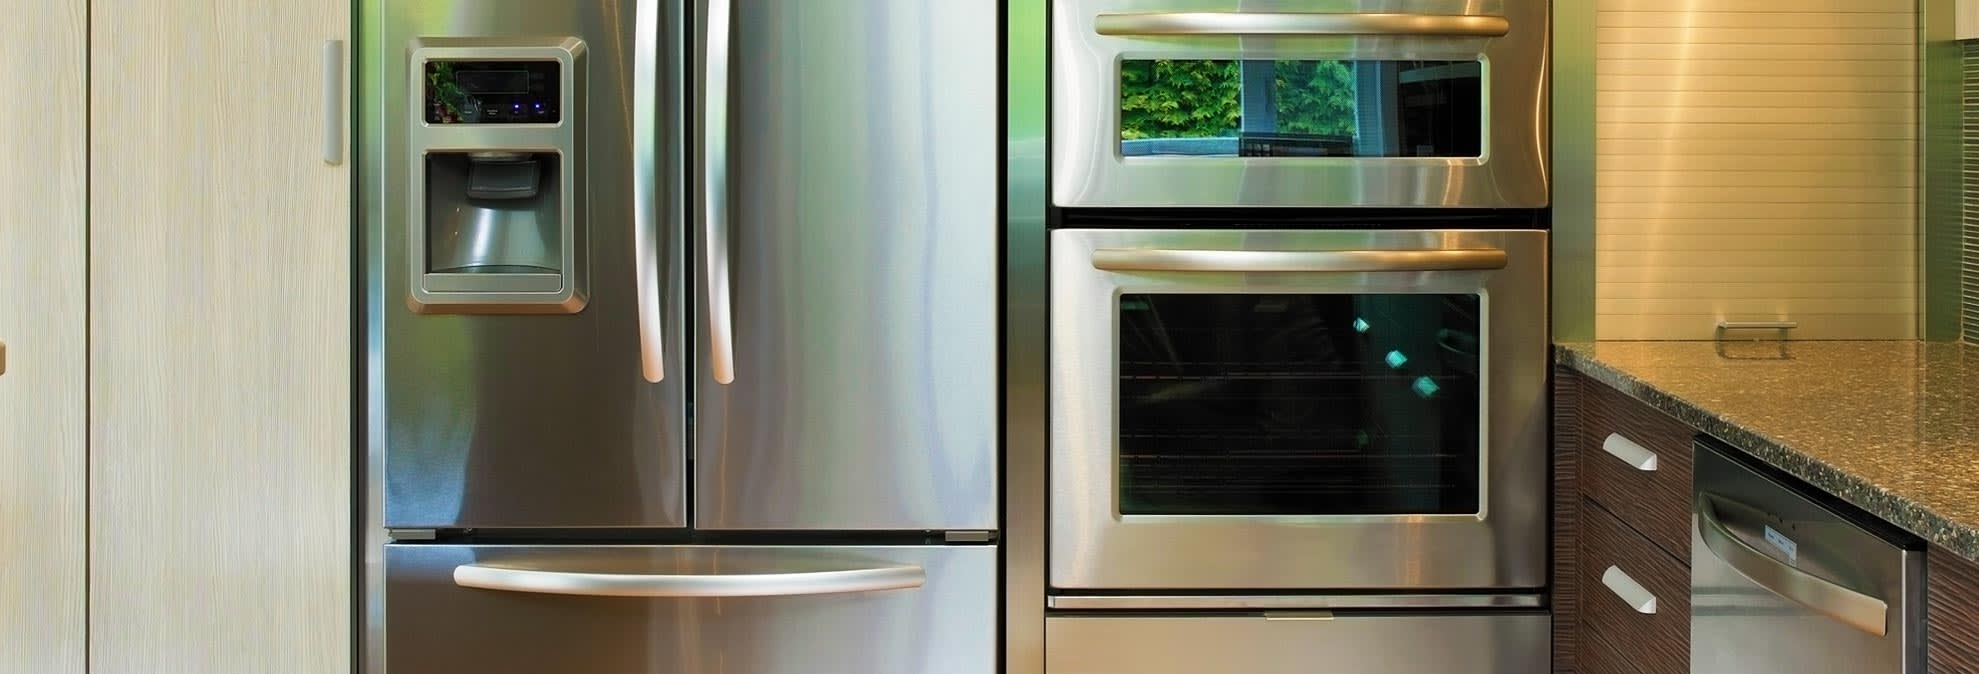 Best Labor Day Refrigerator Deals Consumer Reports